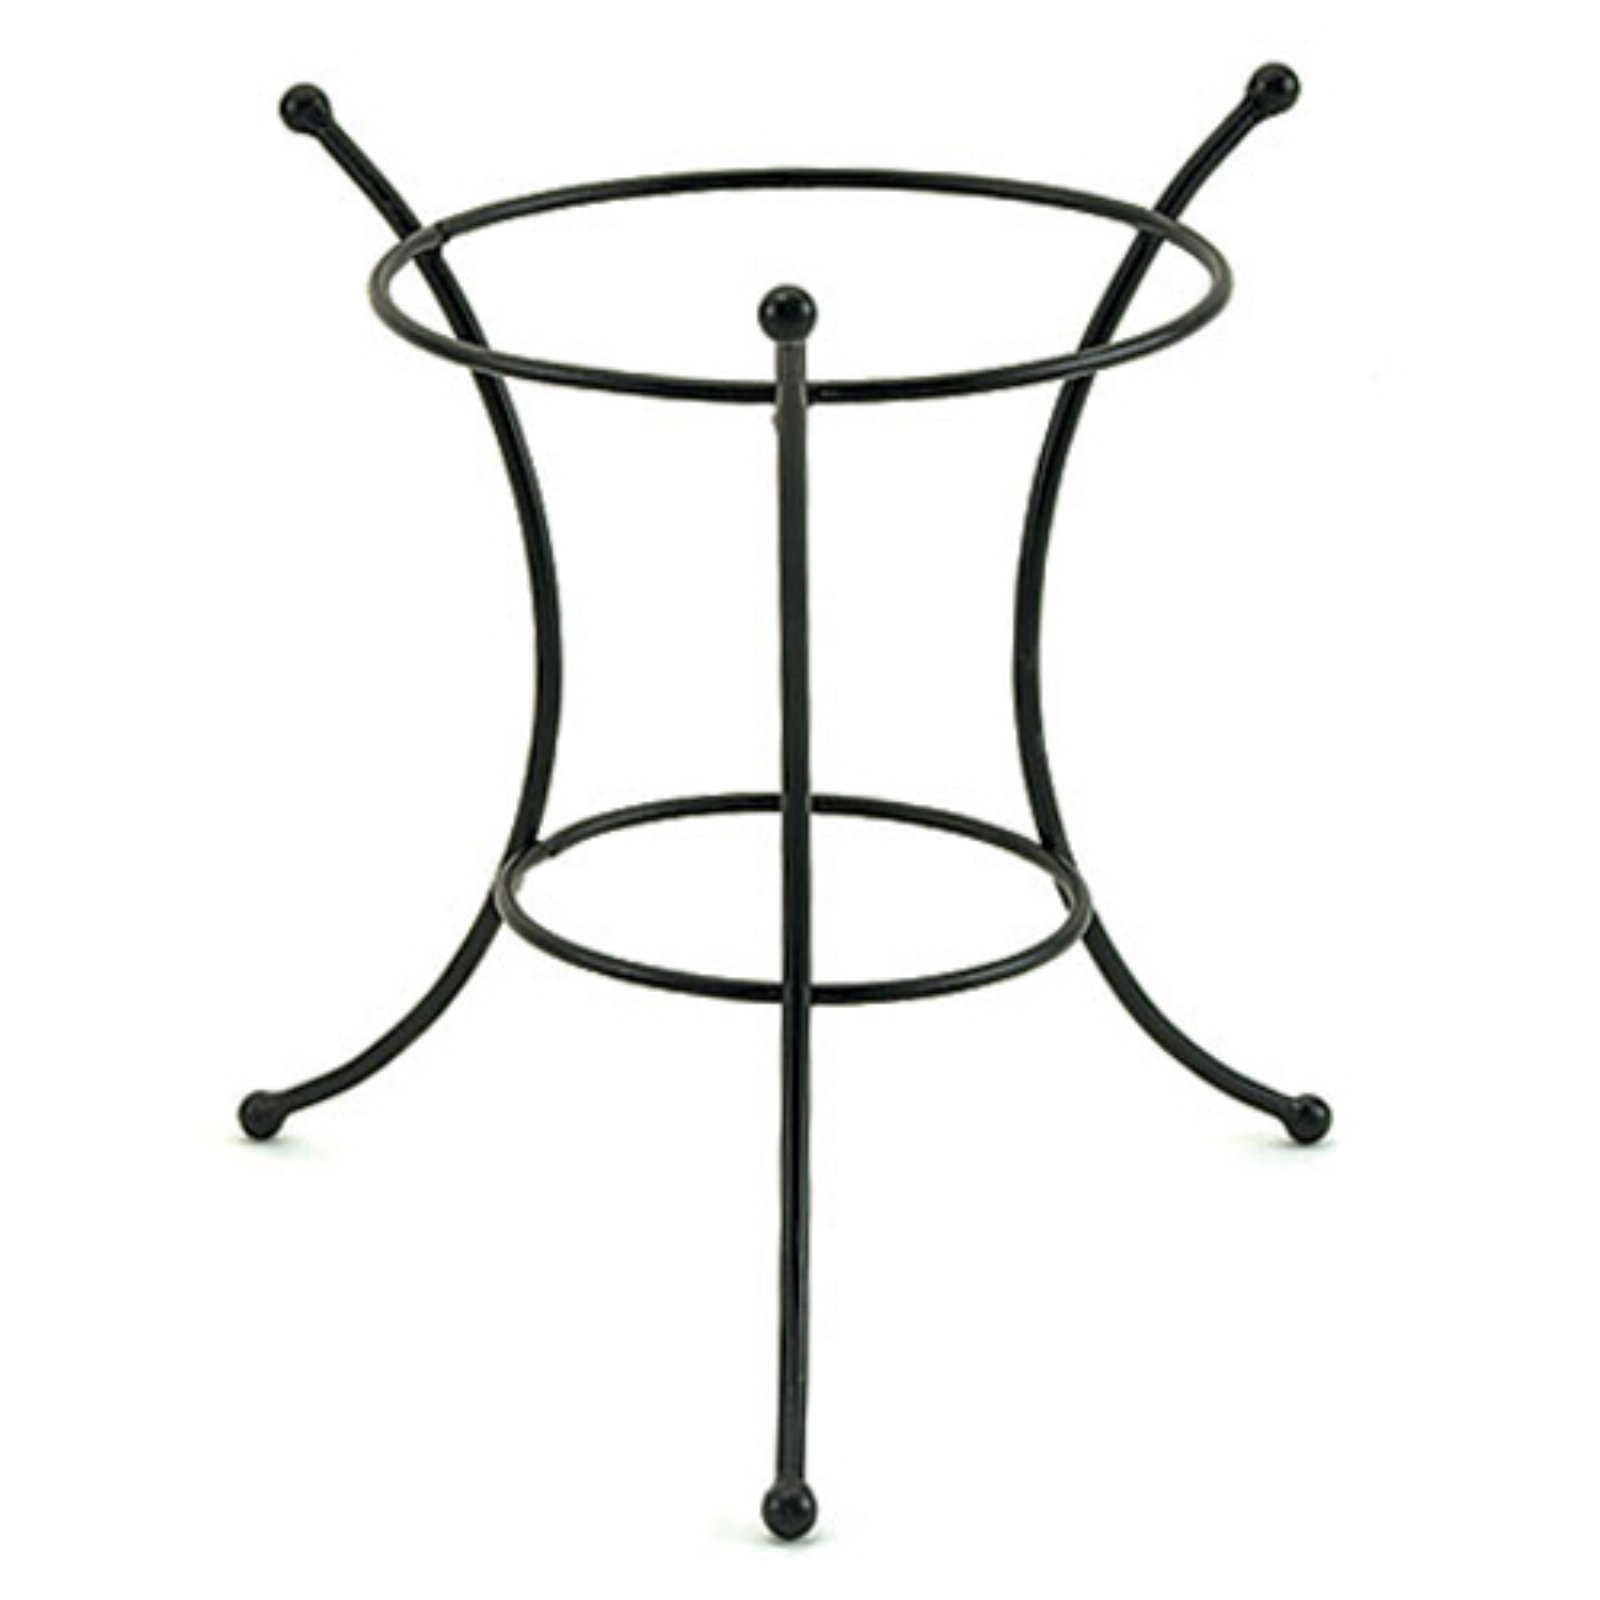 Achla Designs Tri Leg Gazing Ball Stand by Minuteman International